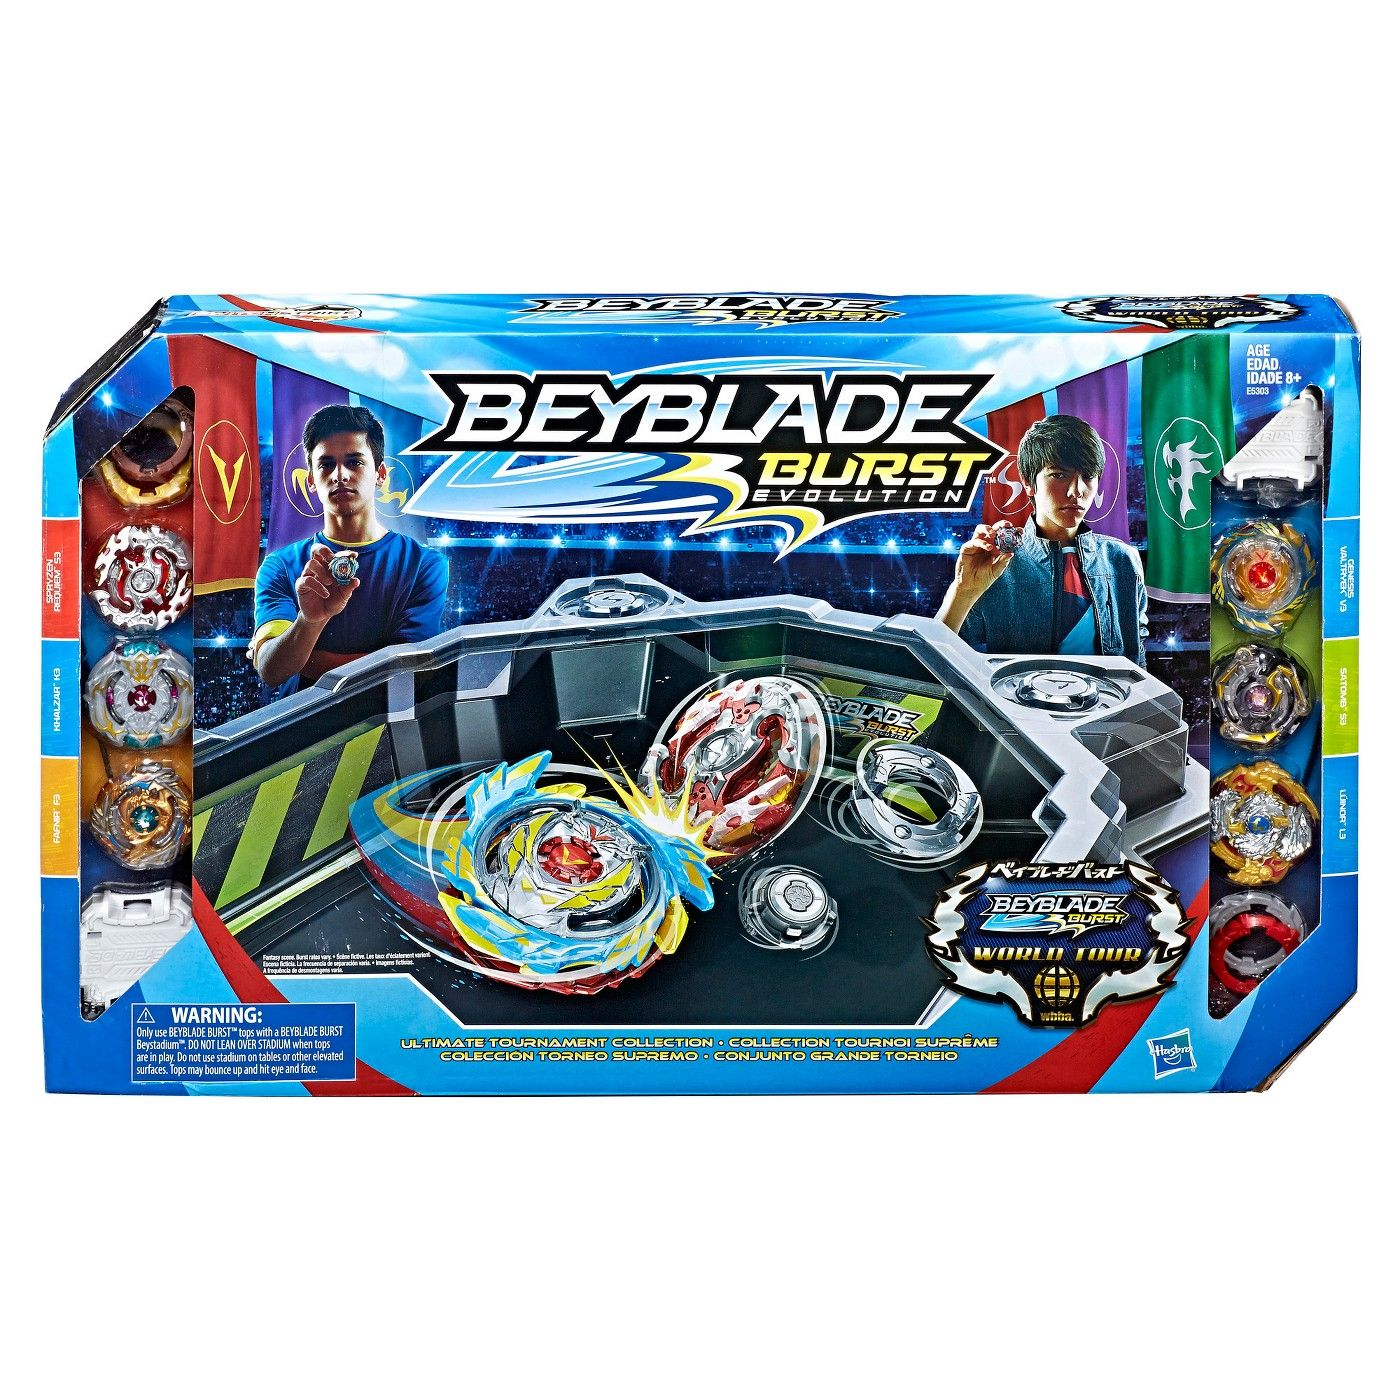 Beyblade Burst Evolution Ultimate Tournament Collection Tops And Beystadium Image 2 Of 2 Beyblade Toys Beyblade Burst Kids Toy Gifts